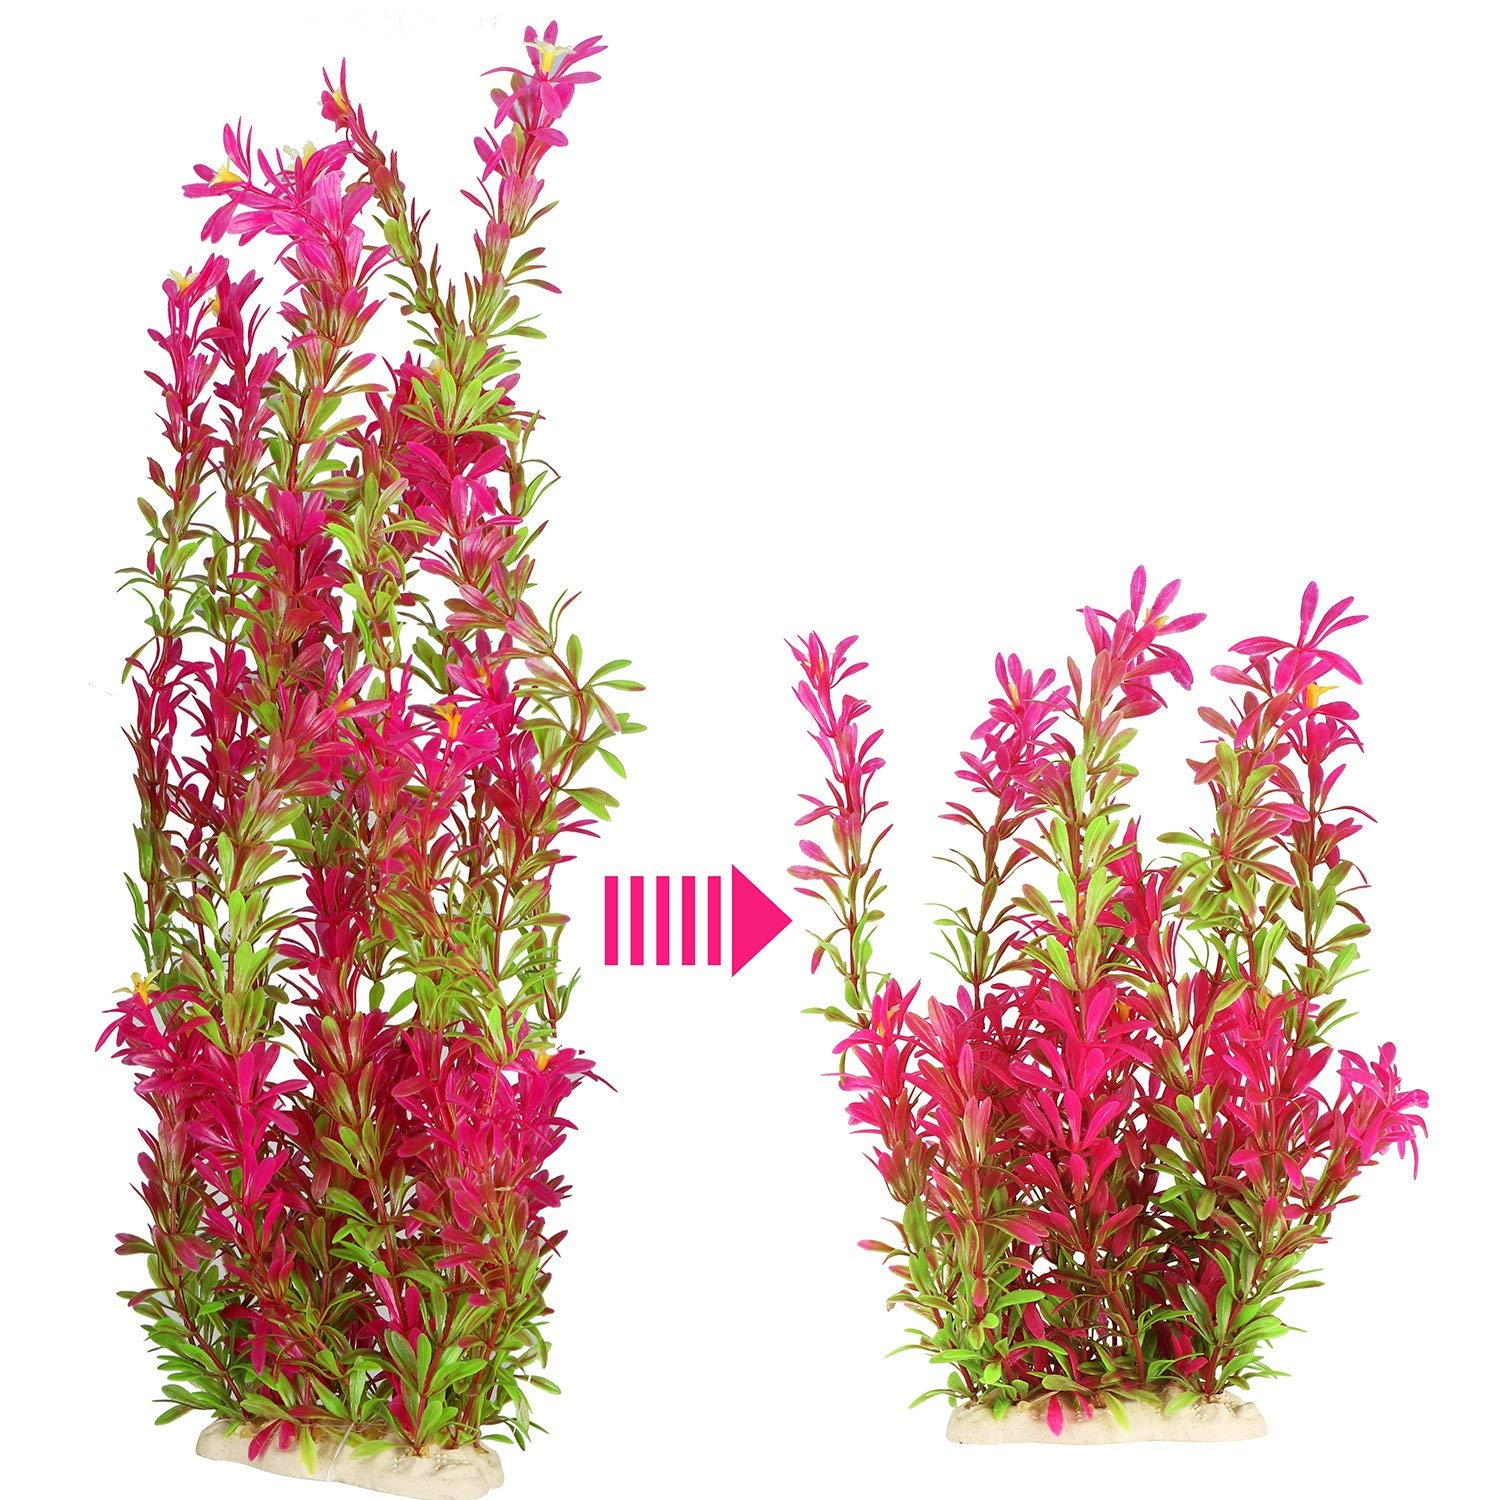 JoyJon Artificial Aquarium Plants Plastic Fish Tank Aquascaping Decorations Water Aquatic Plants